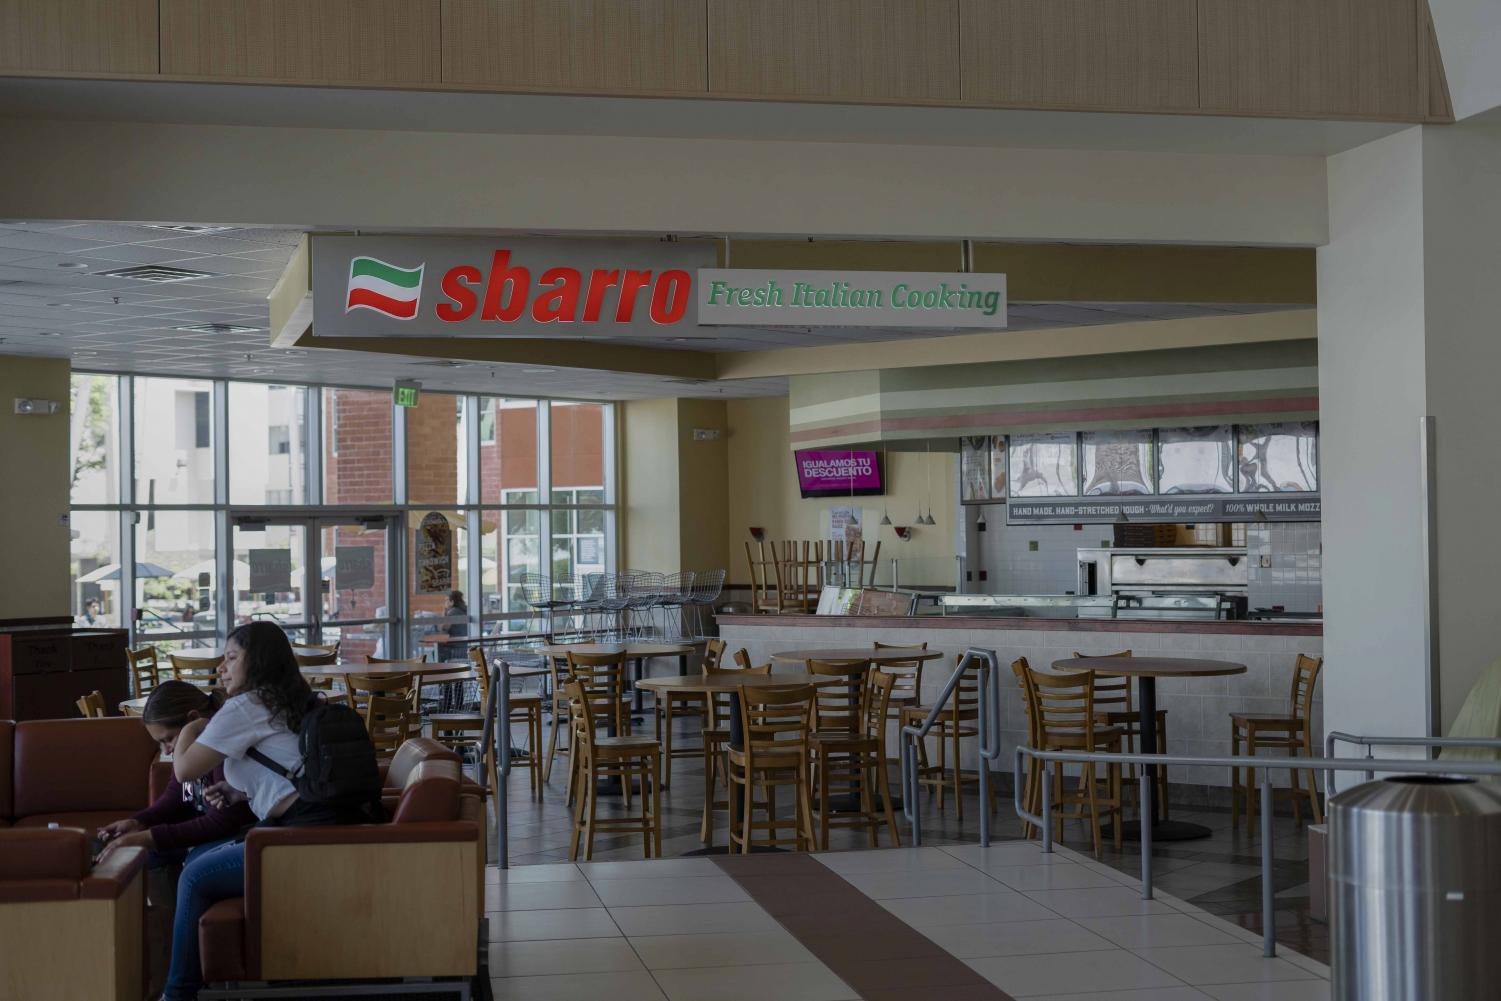 Inside view of Sbarro.